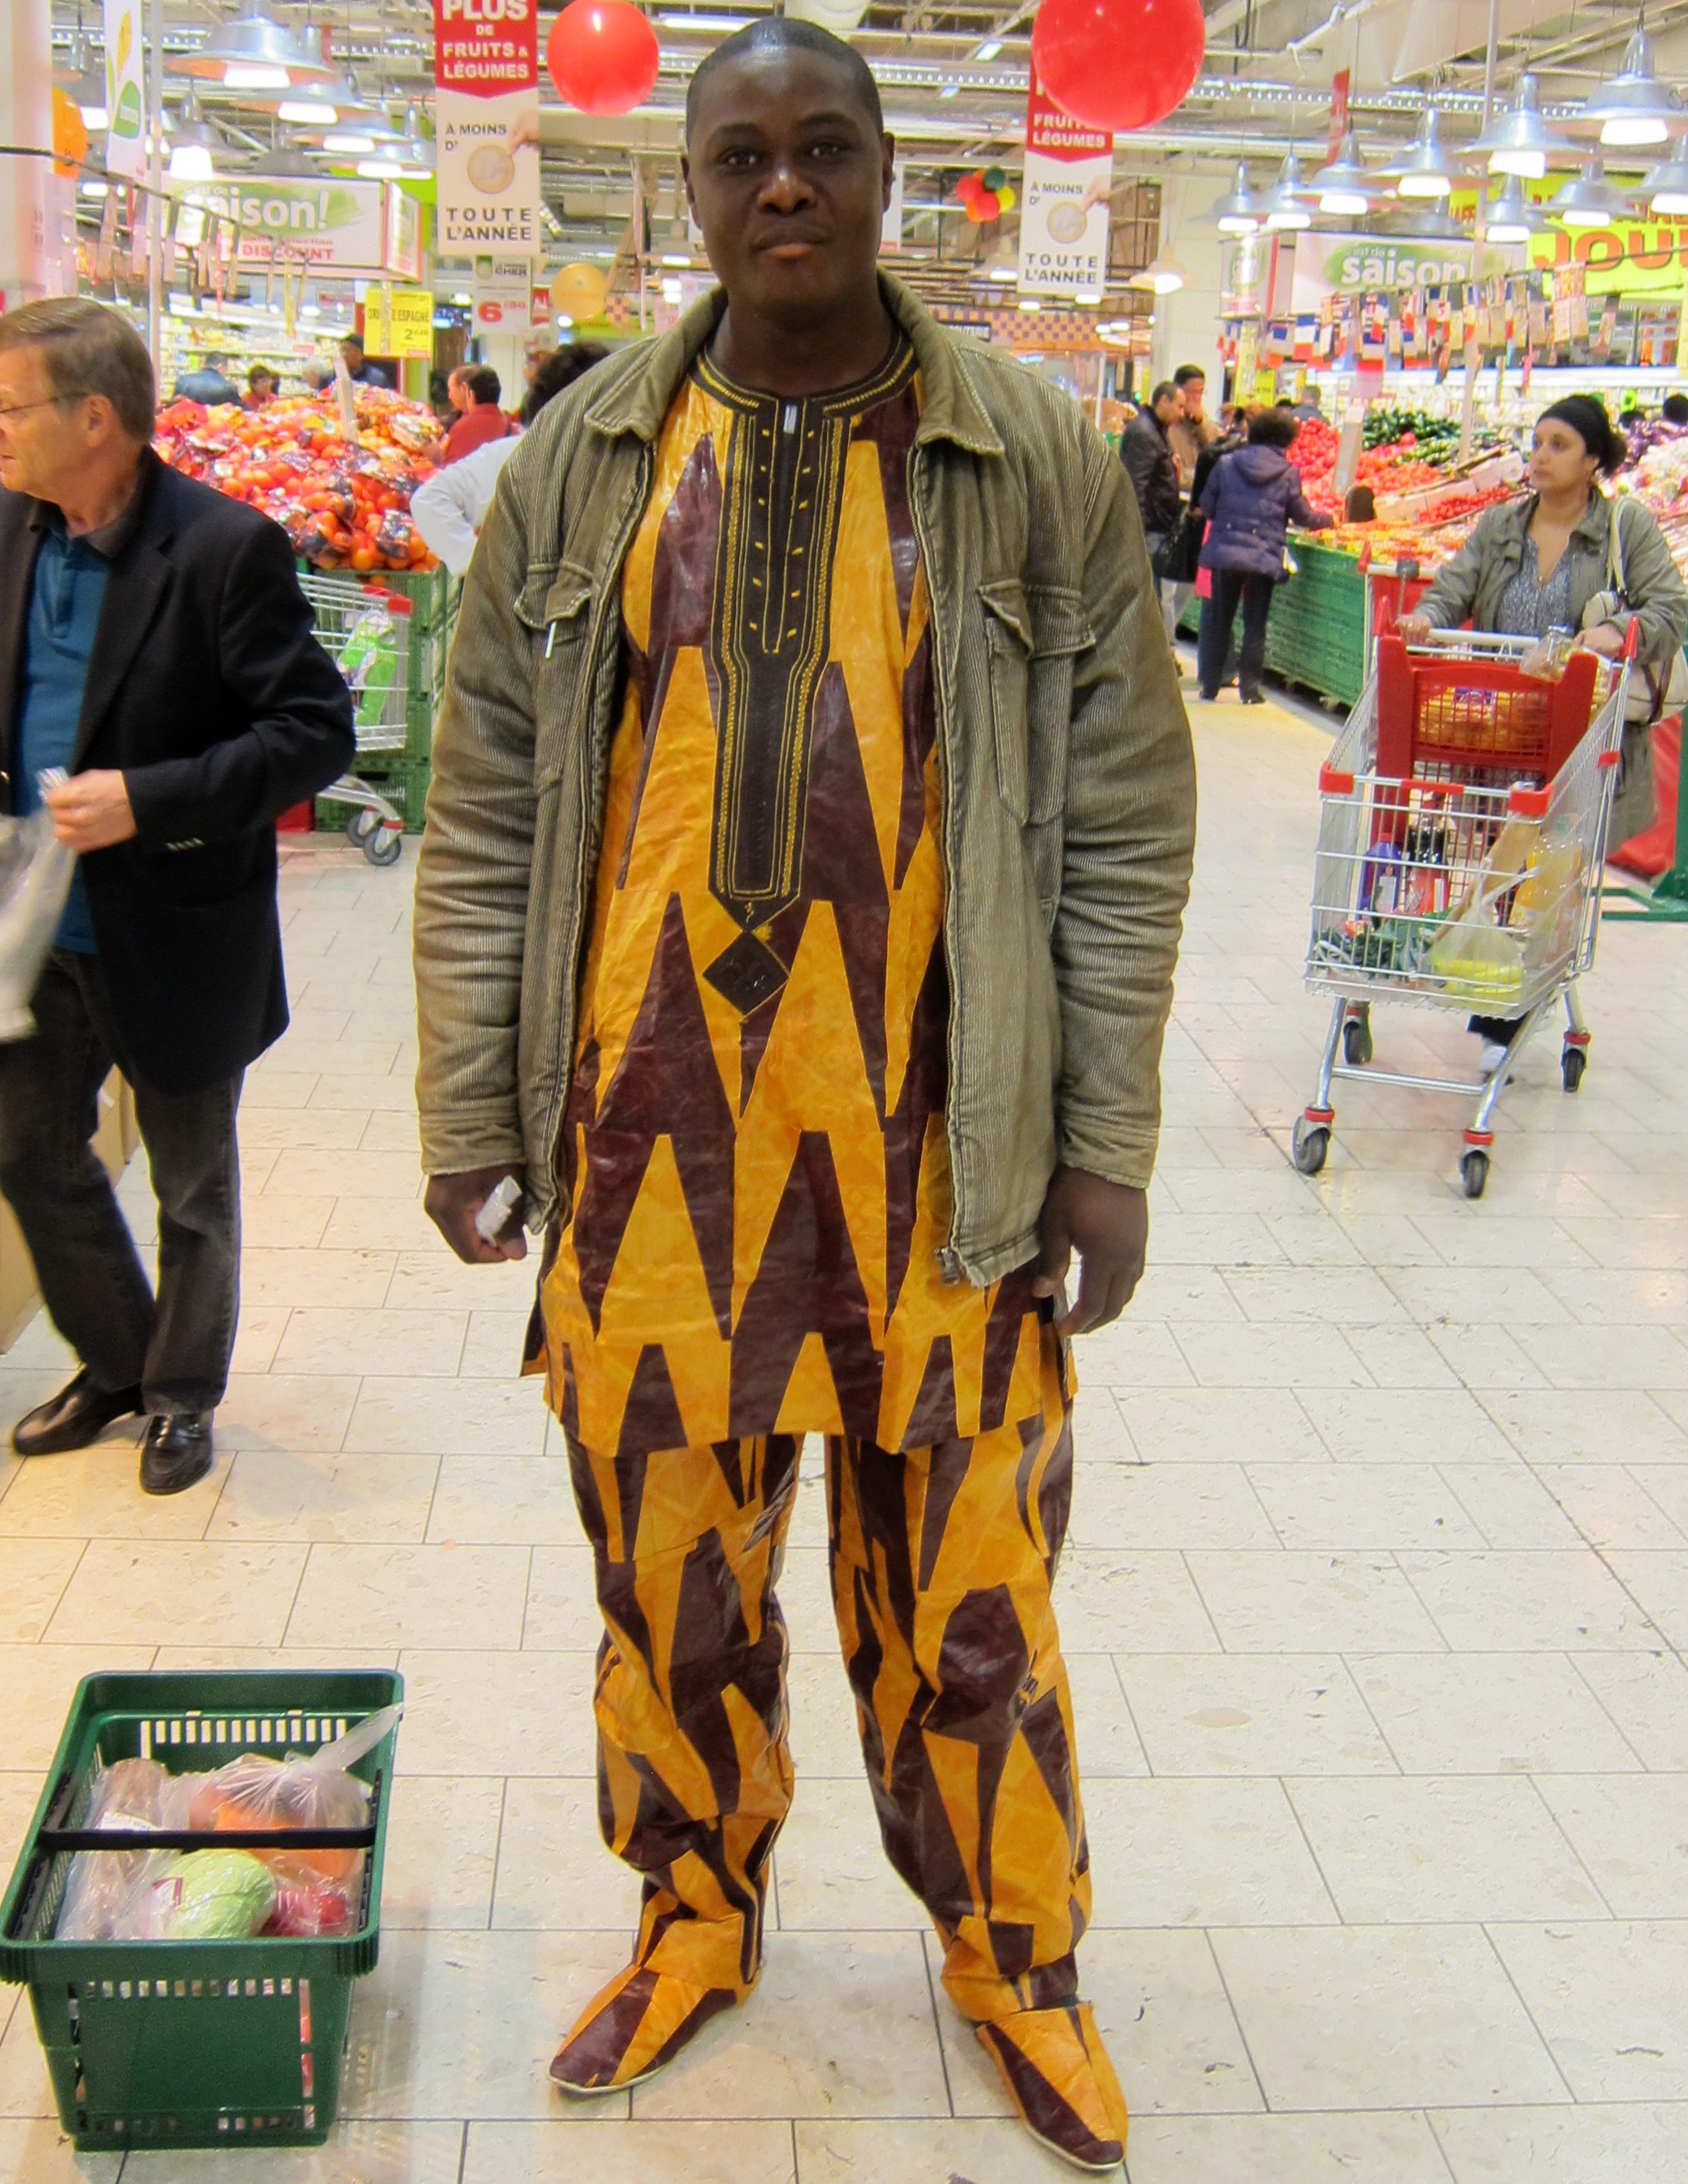 2012 in a Paris supermarket.   I liked his outfit.